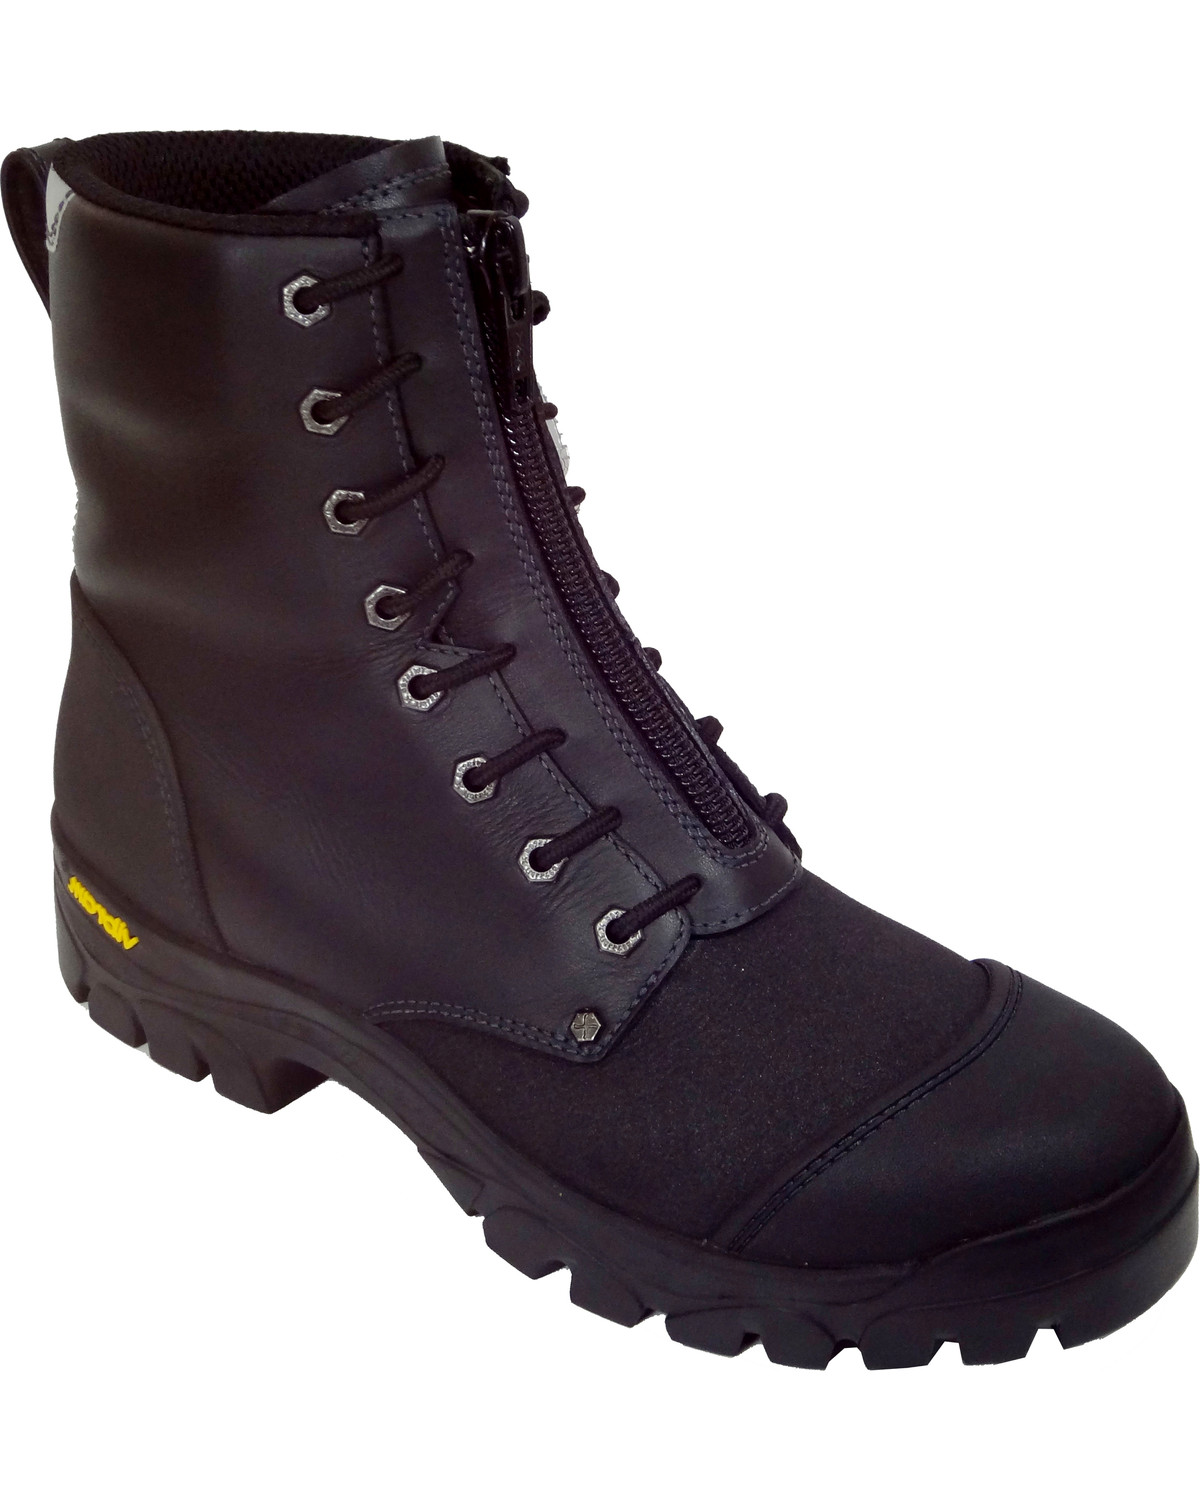 Twisted X Men's Fire Resistant Safety Boots | Boot Barn